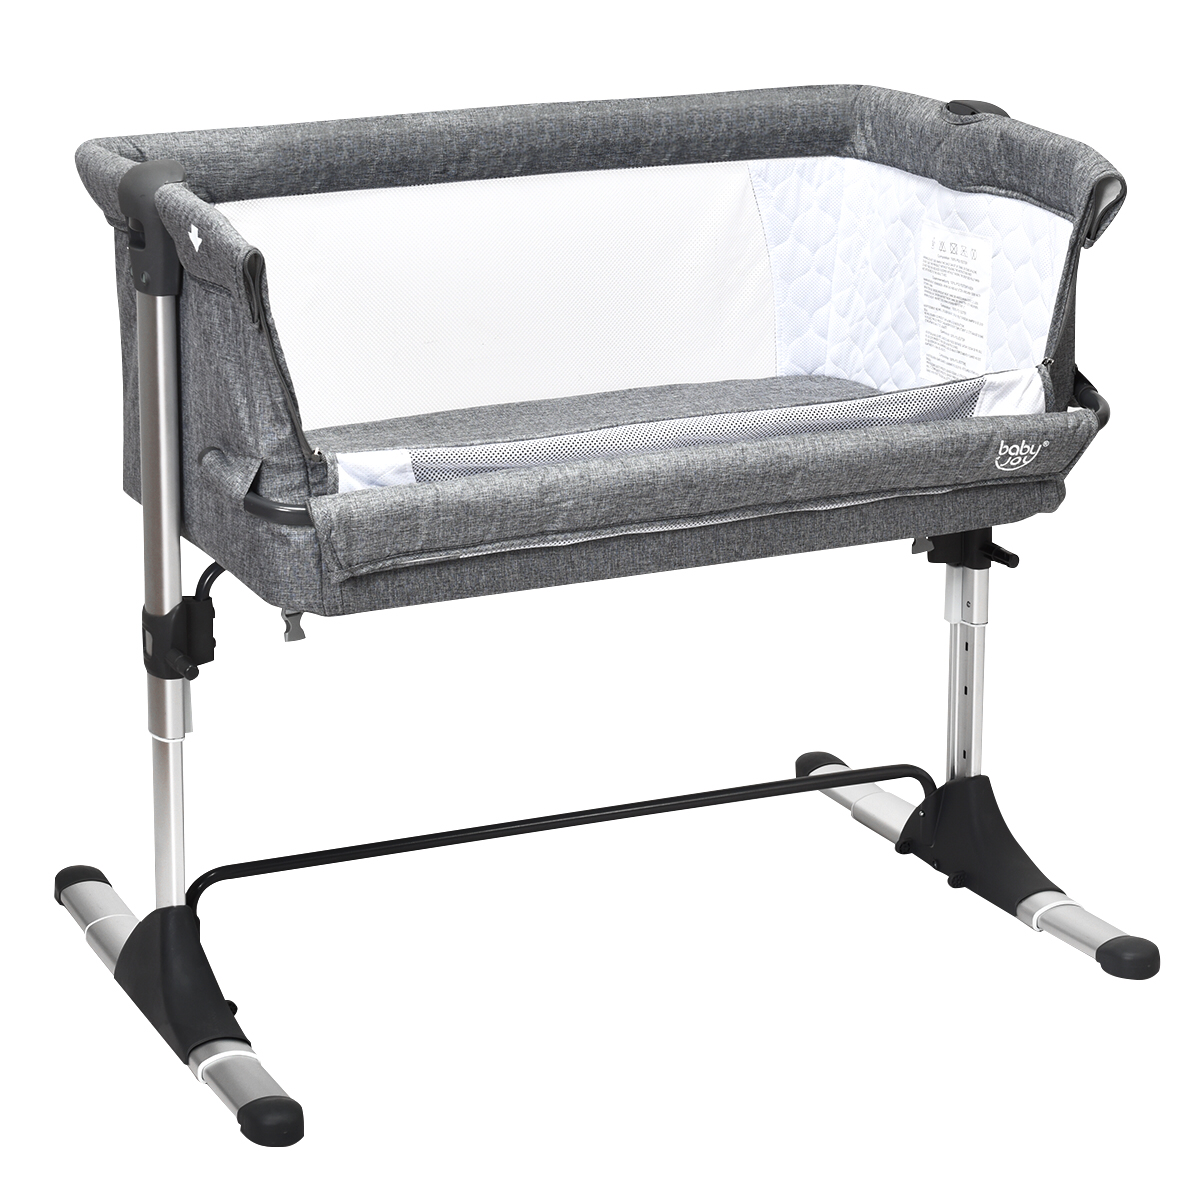 Baby Portable Baby Bed Baby Bed Travel Bassinet